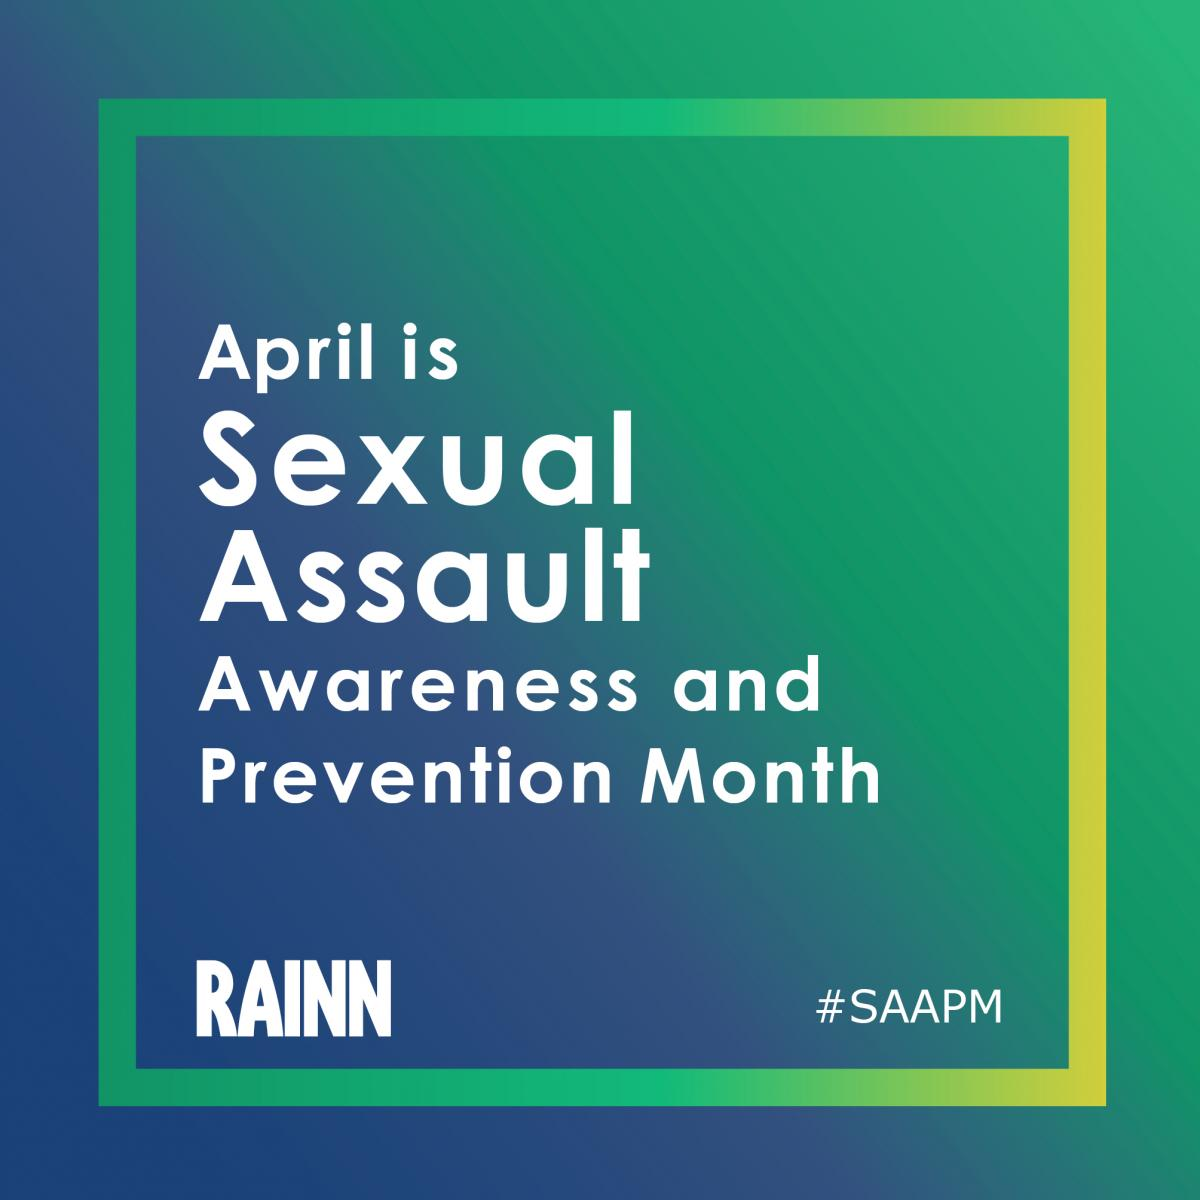 Downloadable graphic promoting Sexual Assault Awareness and Prevention Month in green and blue